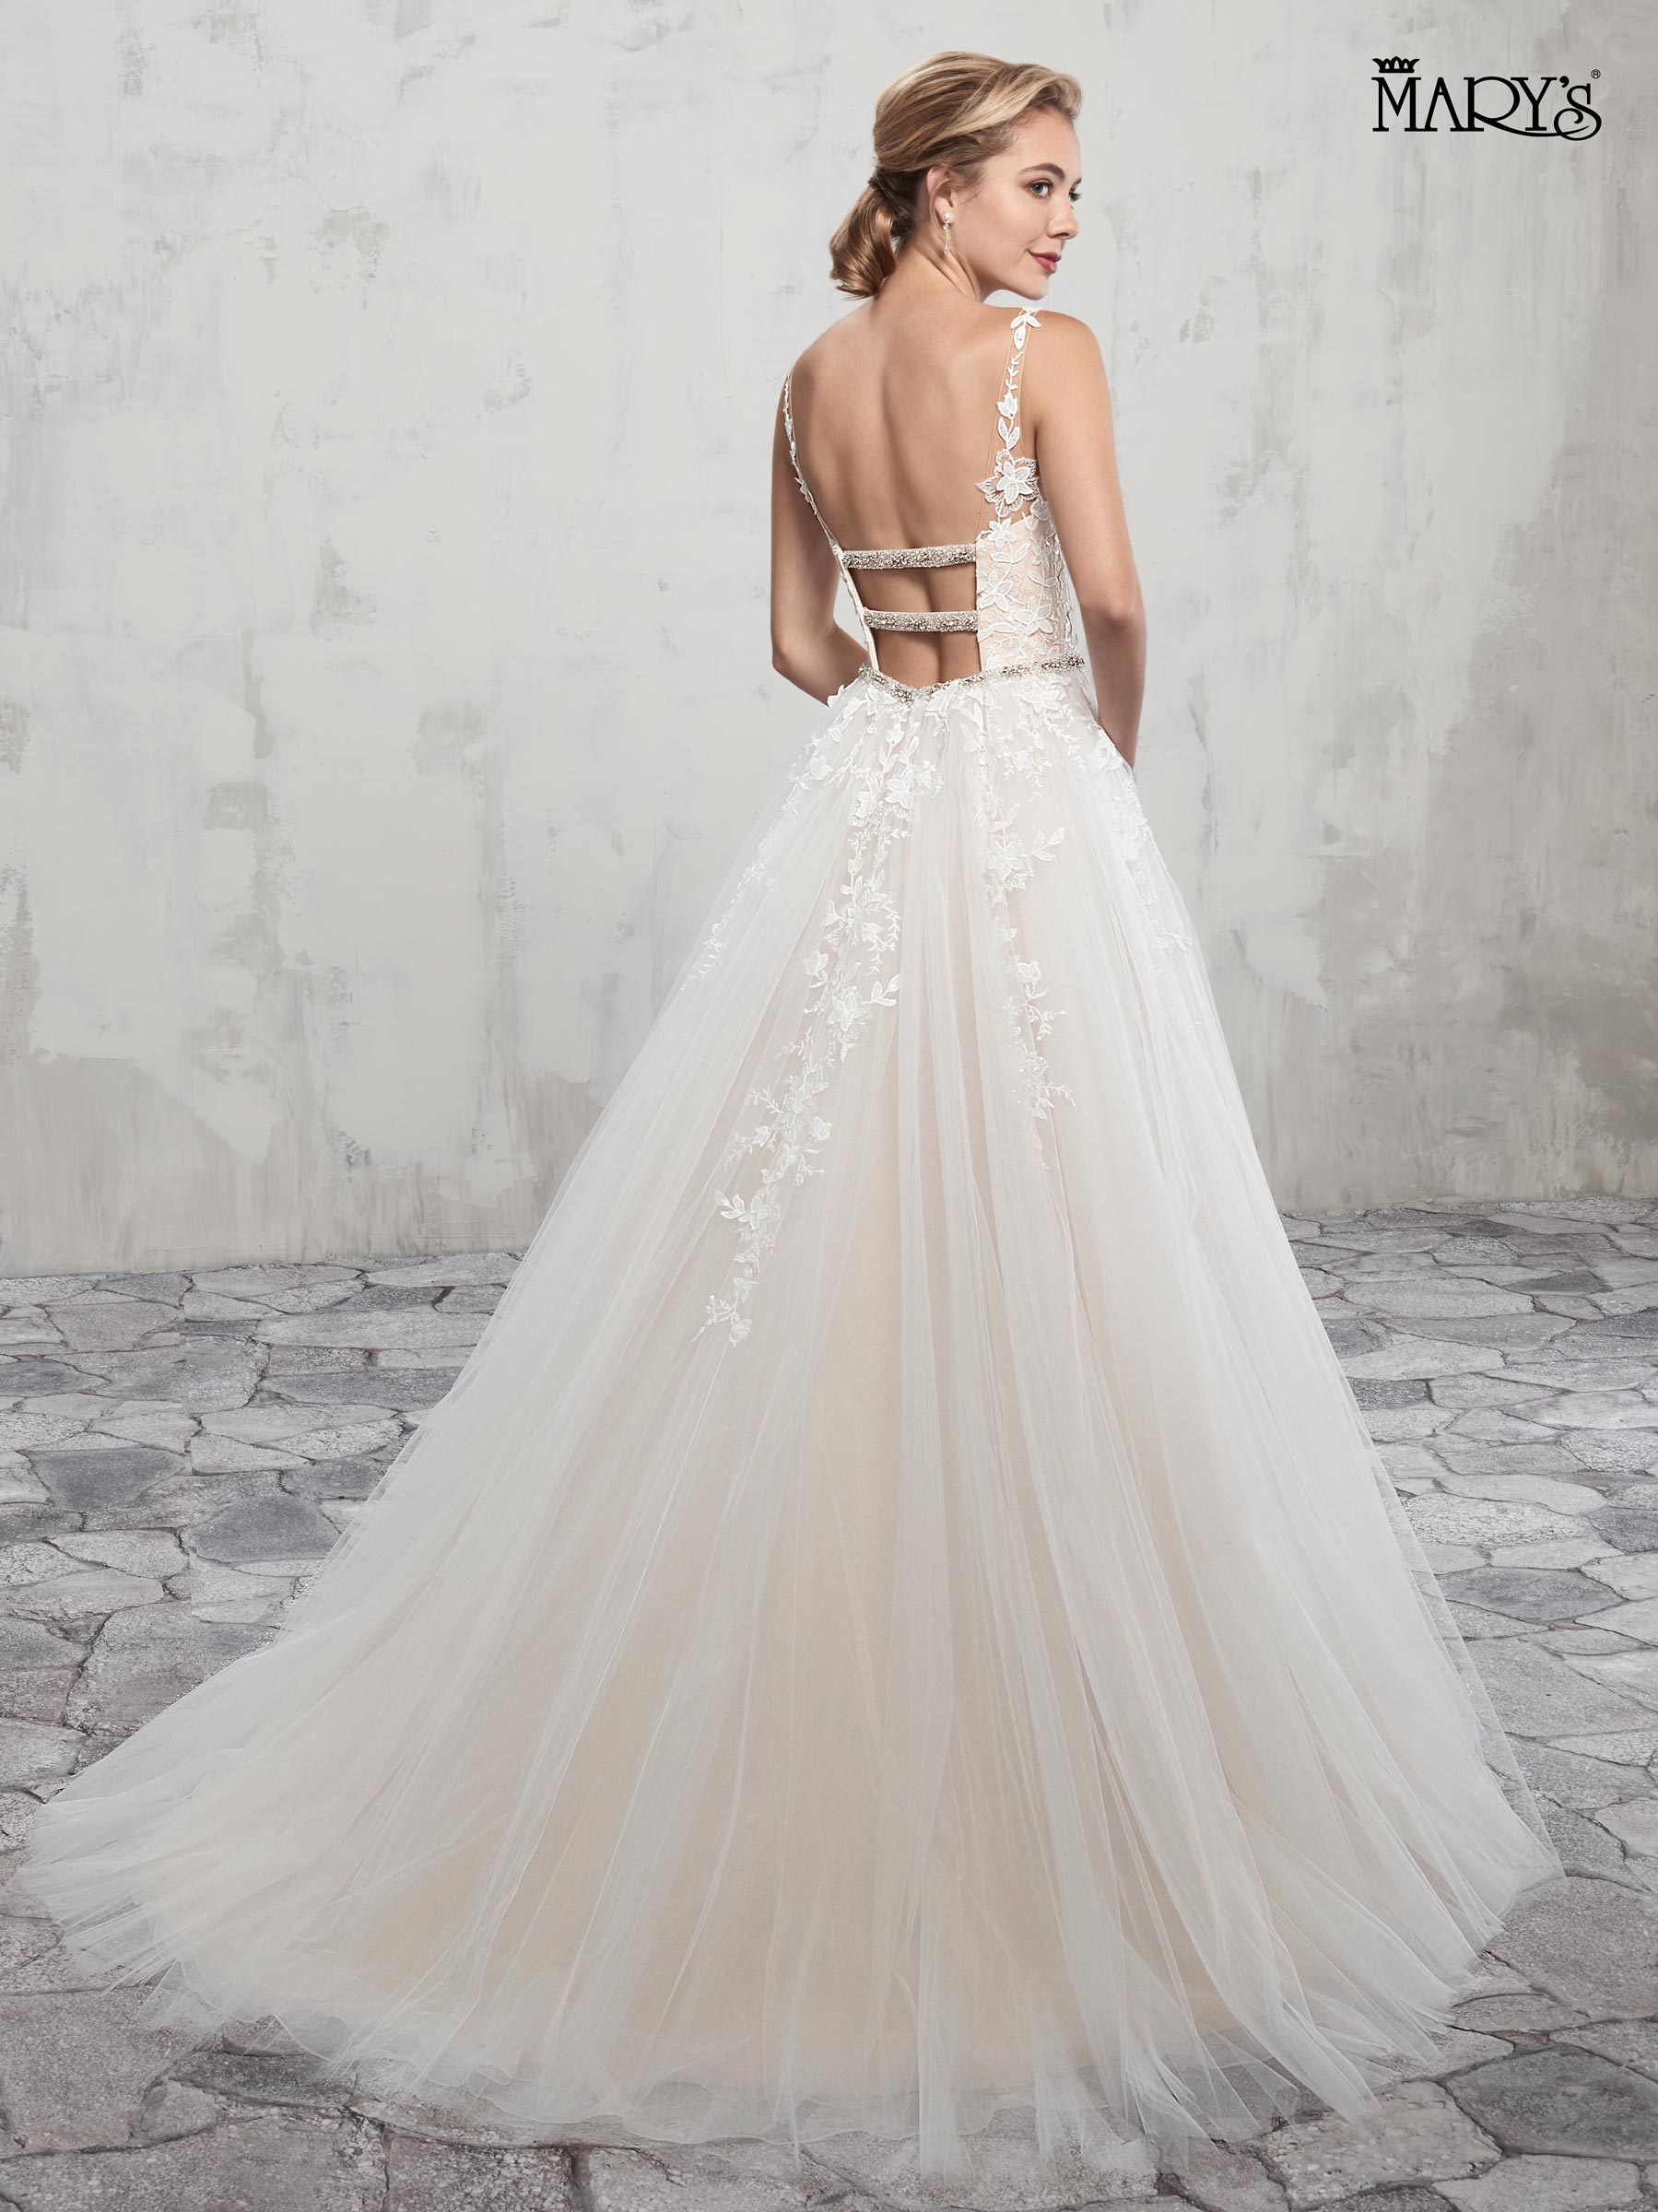 Bridal Wedding Dresses | Mary's | Style - MB3018